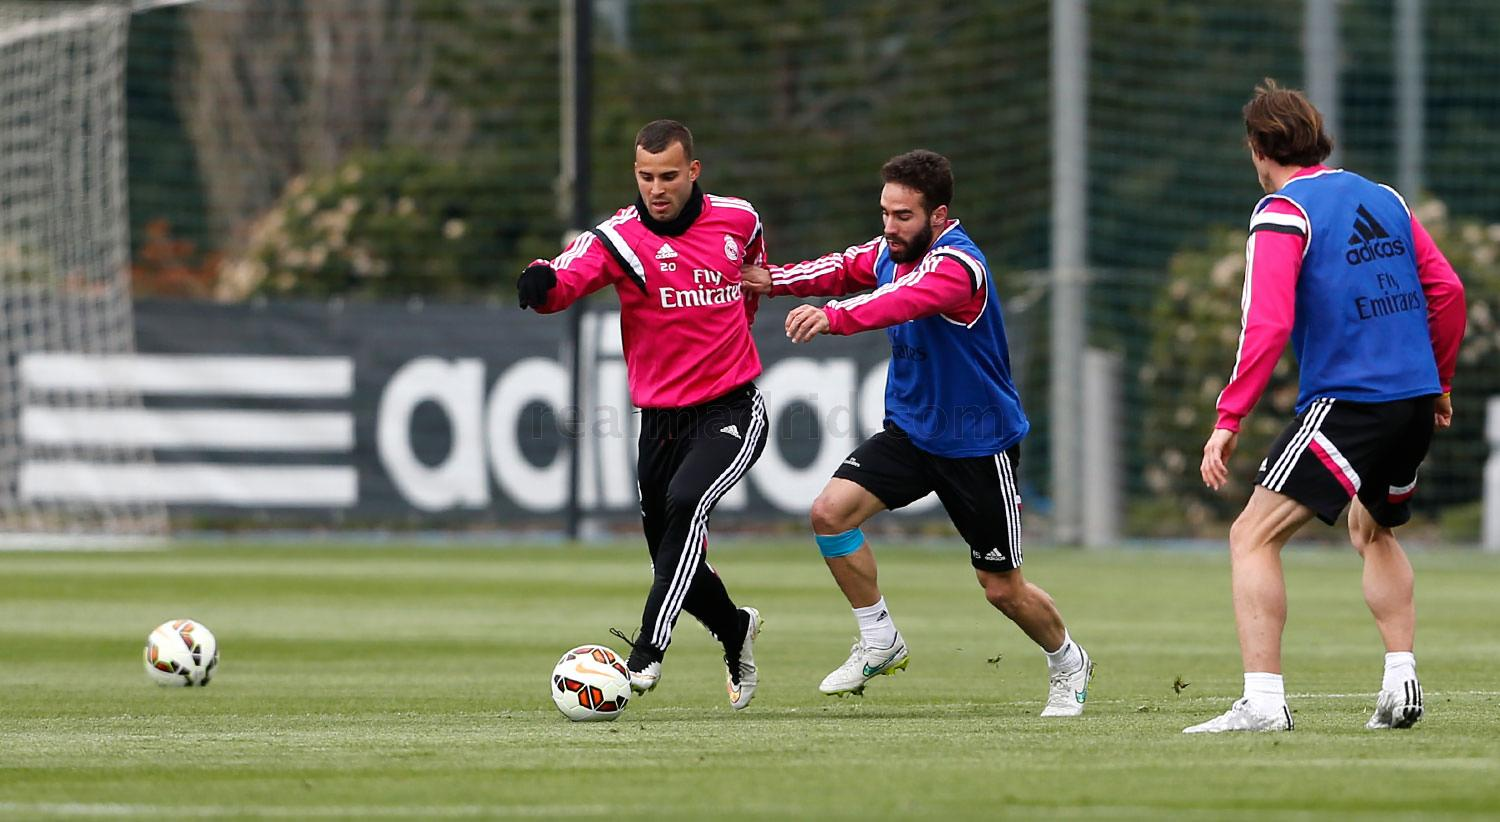 Real Madrid - Entrenamiento del Real Madrid - 19-03-2015